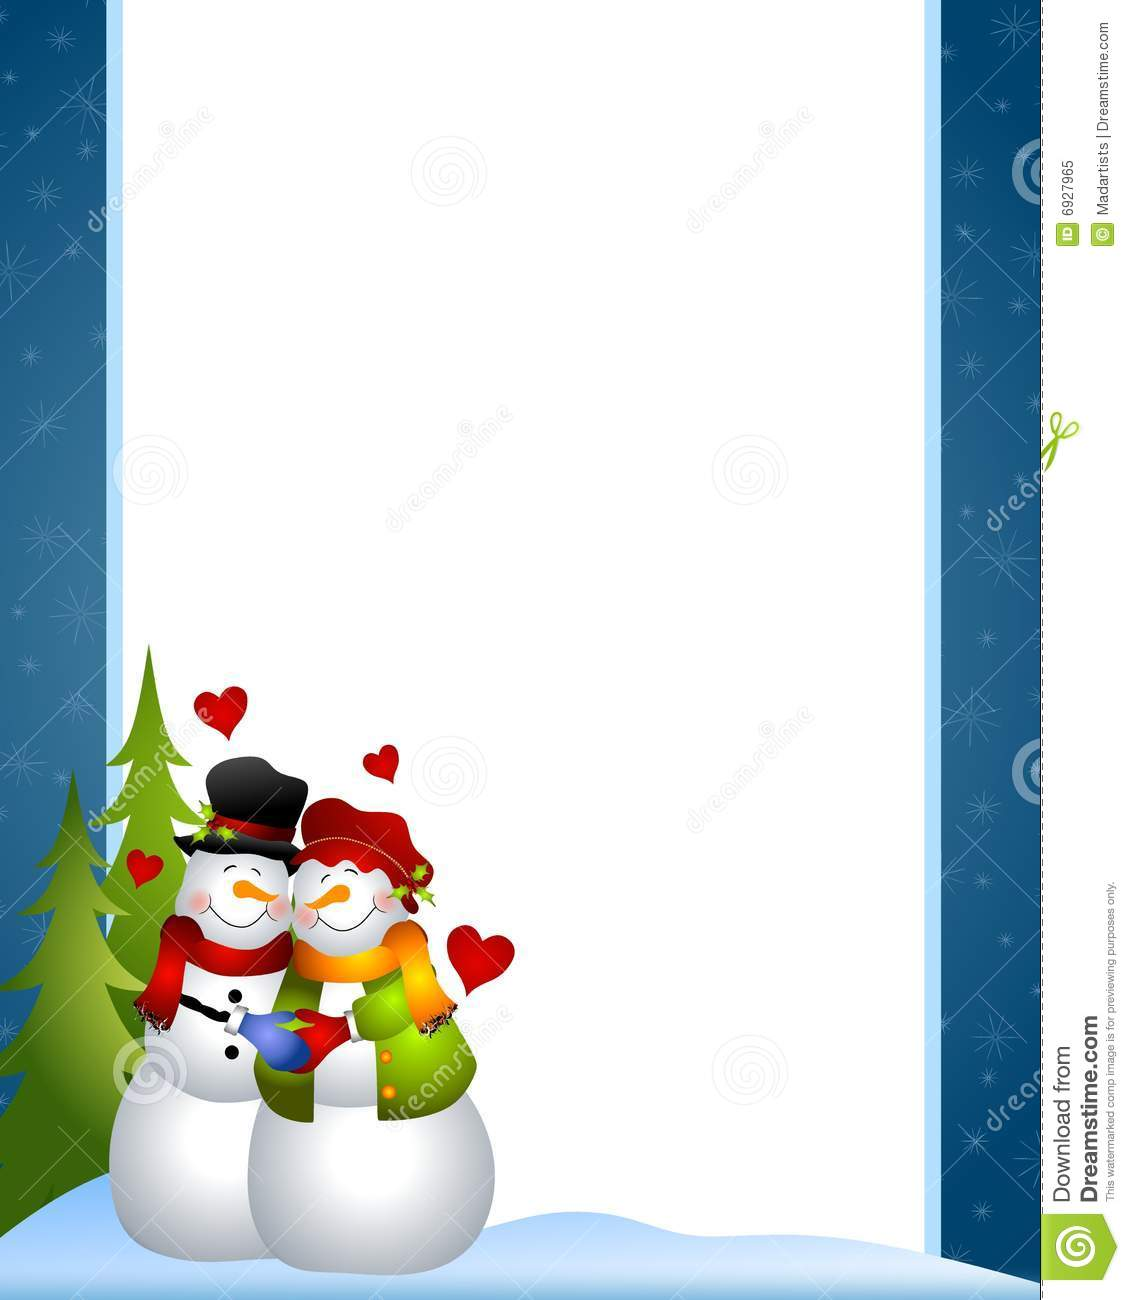 Snowman Love Border stock illustration. Illustration of huddling.